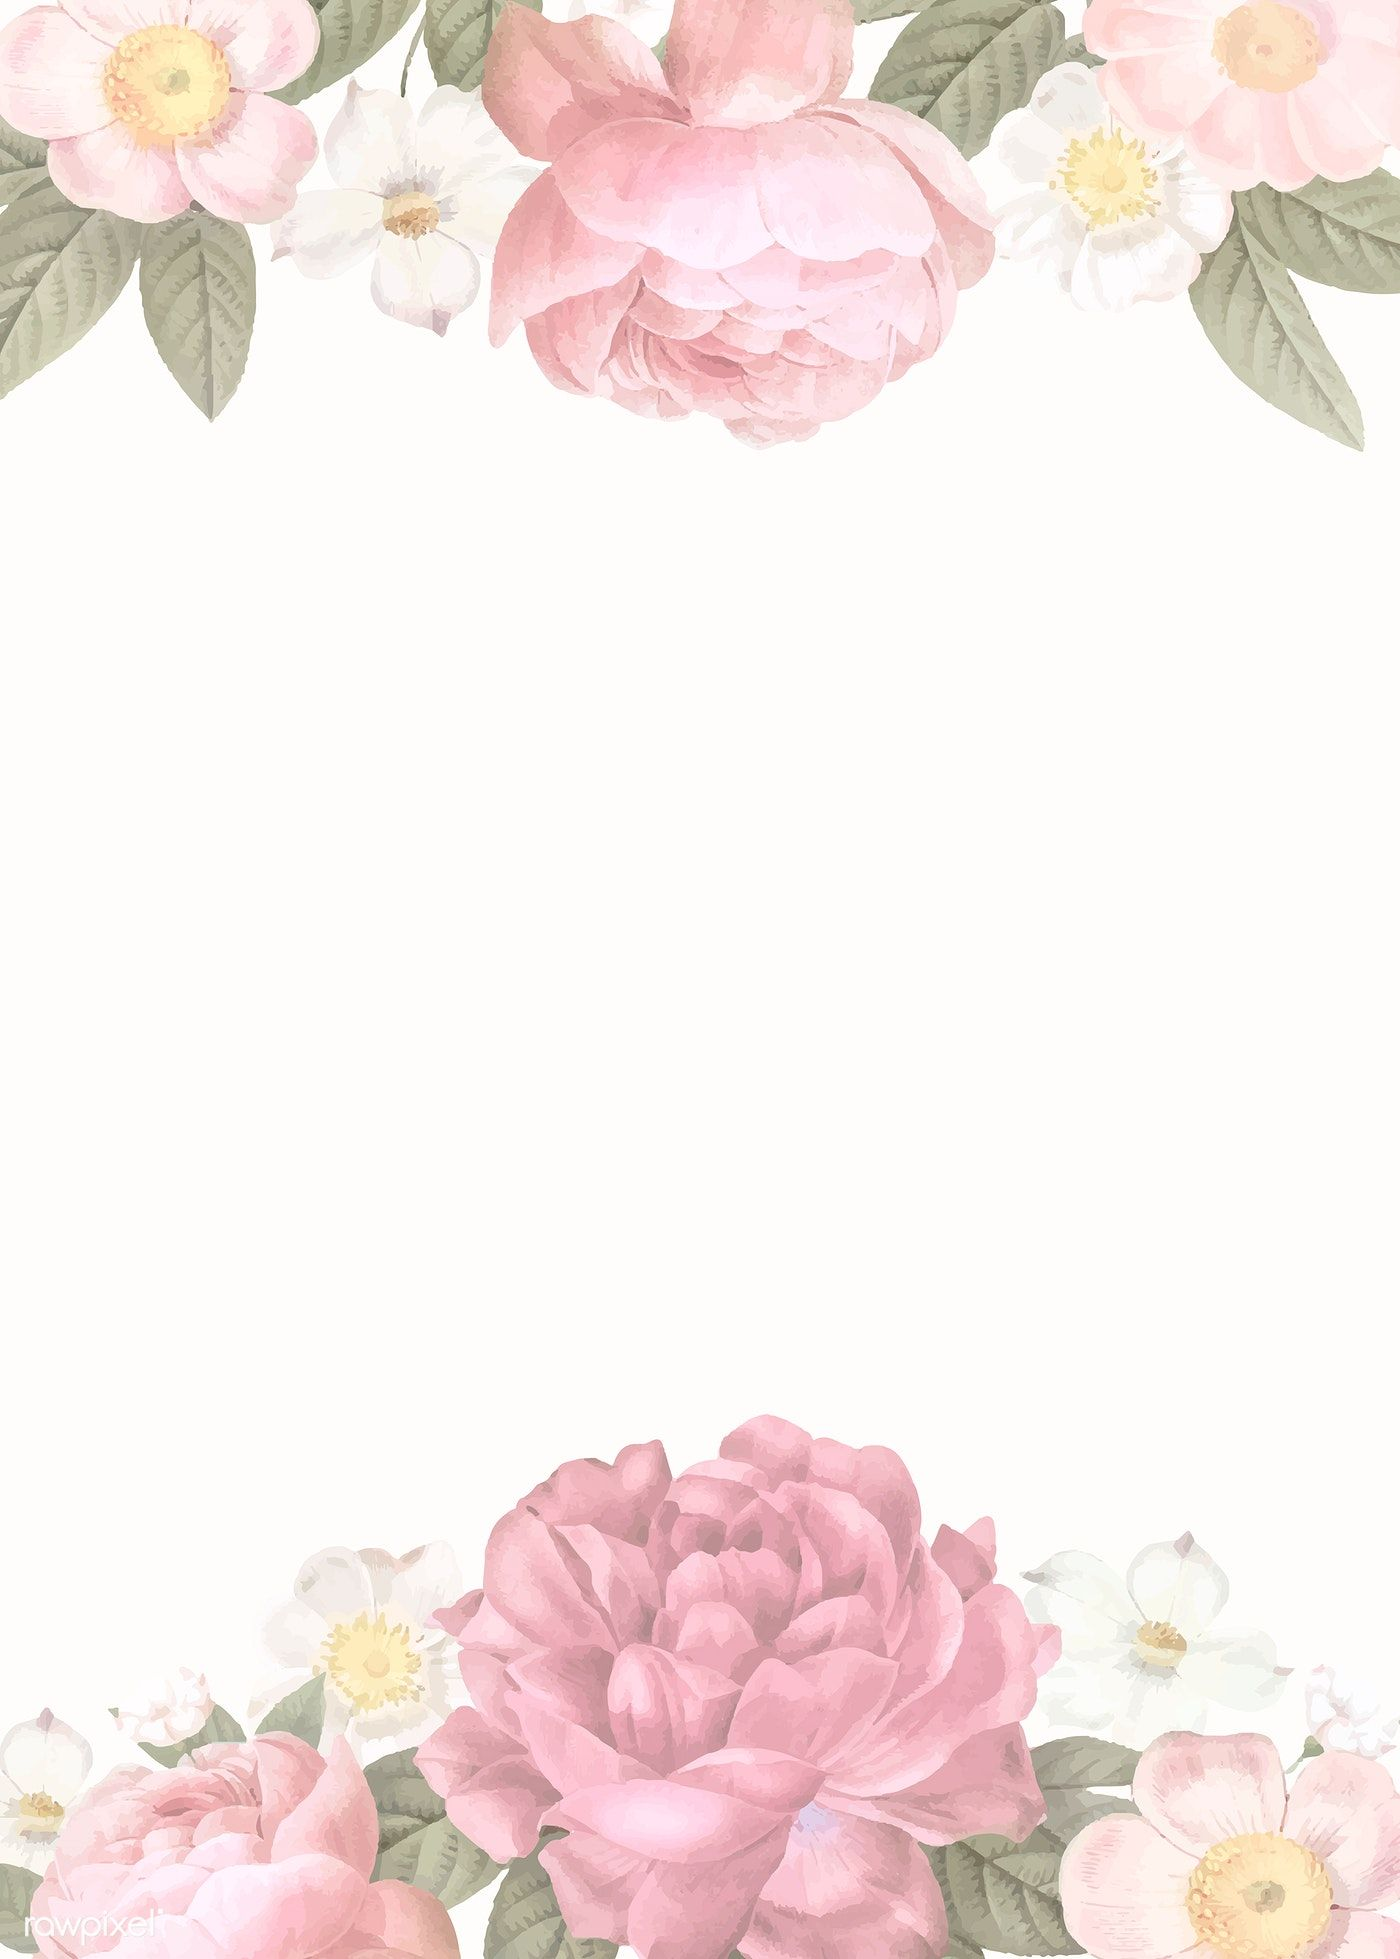 Download premium vector of Elegant floral frame design